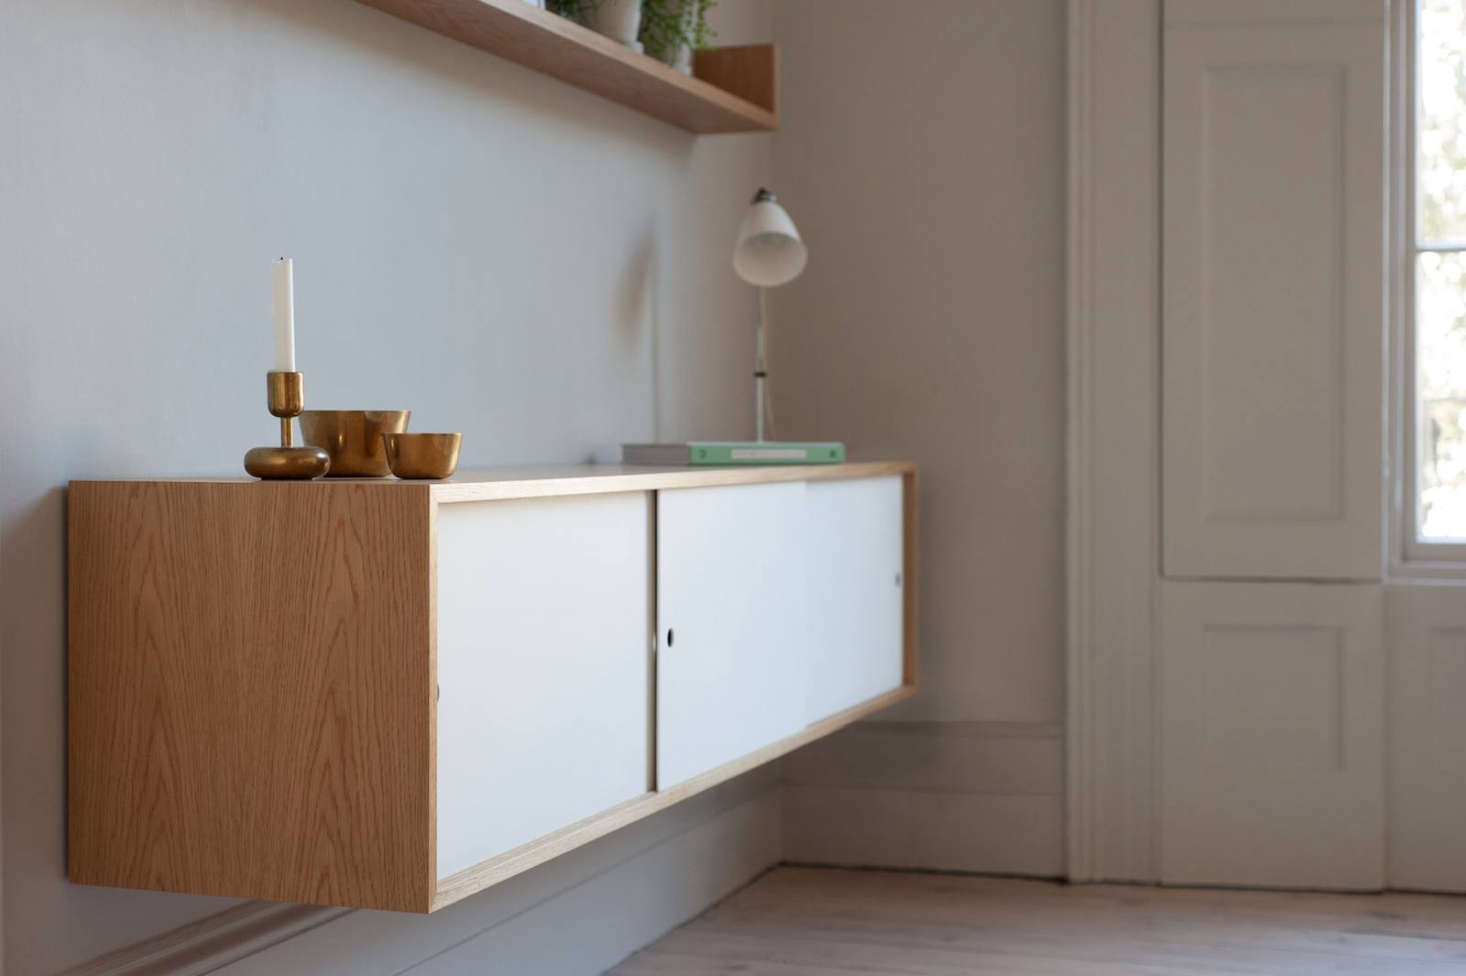 Next to the dining table is a Cantilevered Sideboard from Jack Trench, made of matching white oak with Corian sliding doors.